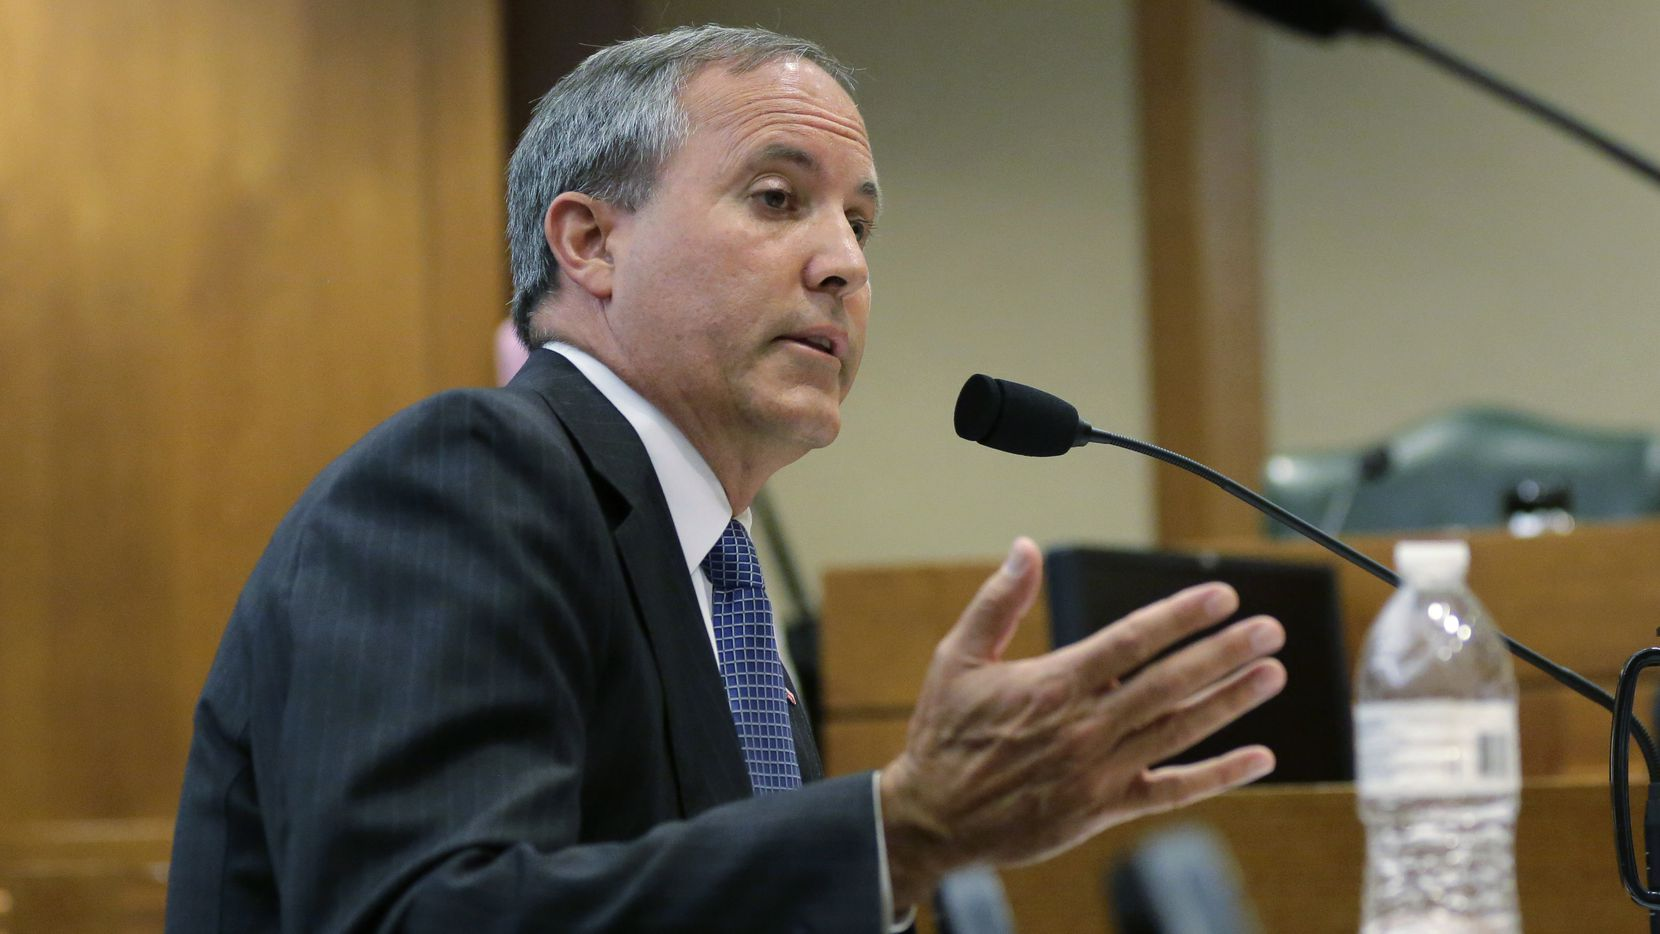 Texas Attorney General Ken Paxton speaks during a hearing in Austin in July.